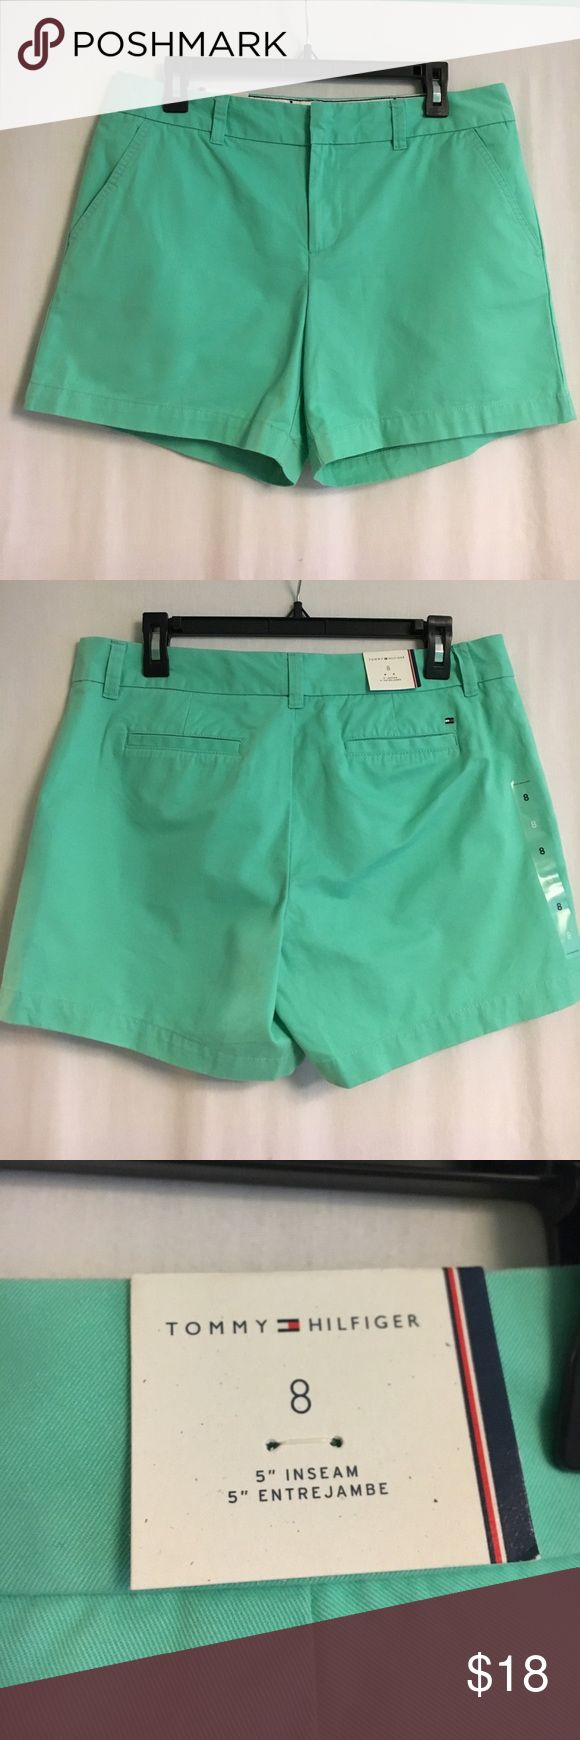 NWT Tommy Hilfiger Mint Green Shorts 100% Cotton. Size 8. Tommy Hilfiger Shorts